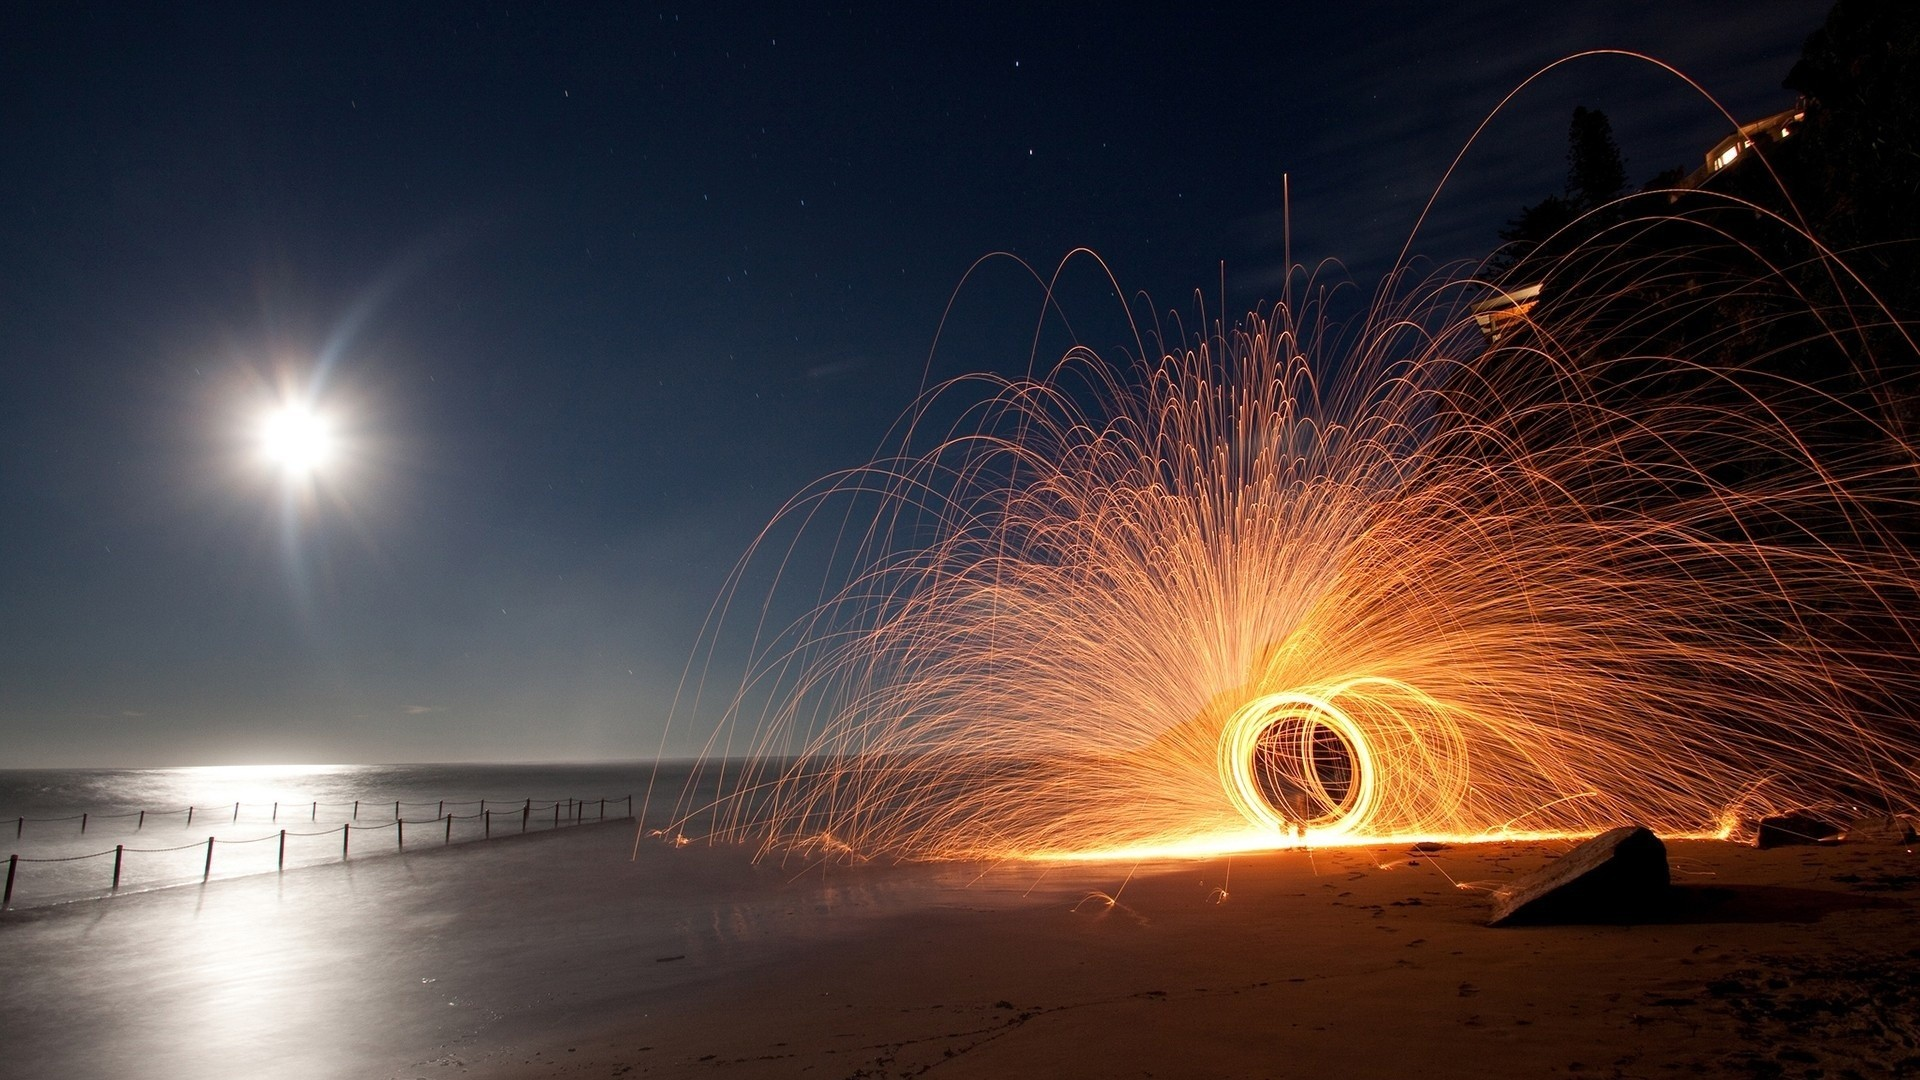 circular sparkler on a beach at night wallpaper | allwallpaper.in